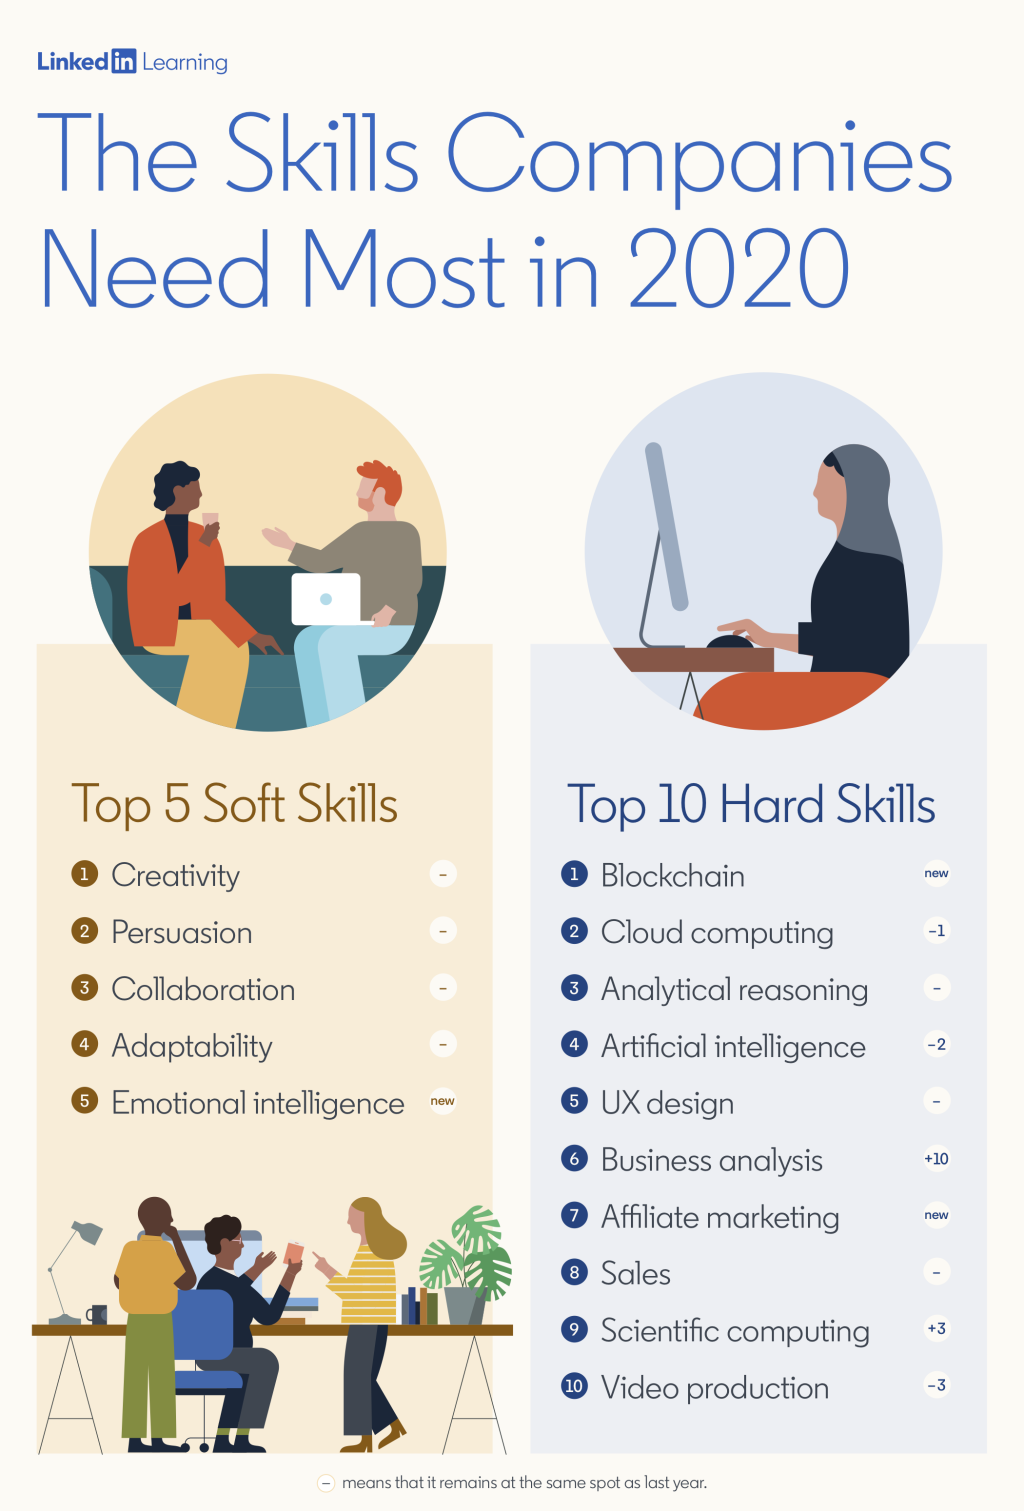 The skills the company needs most